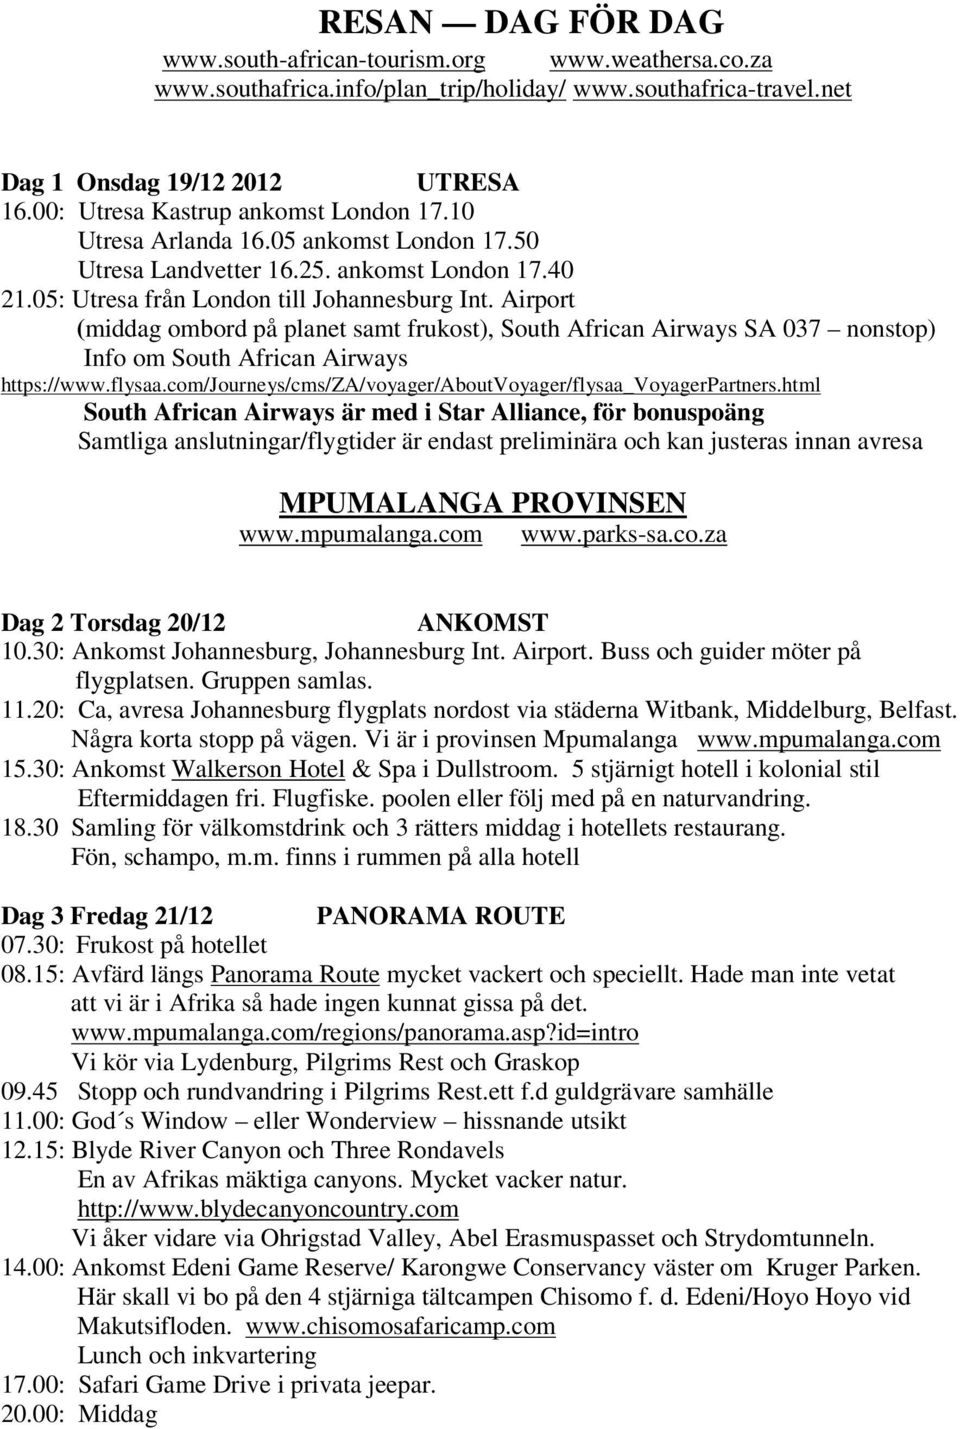 Airport (middag ombord på planet samt frukost), South African Airways SA 037 nonstop) Info om South African Airways https://www.flysaa.com/journeys/cms/za/voyager/aboutvoyager/flysaa_voyagerpartners.